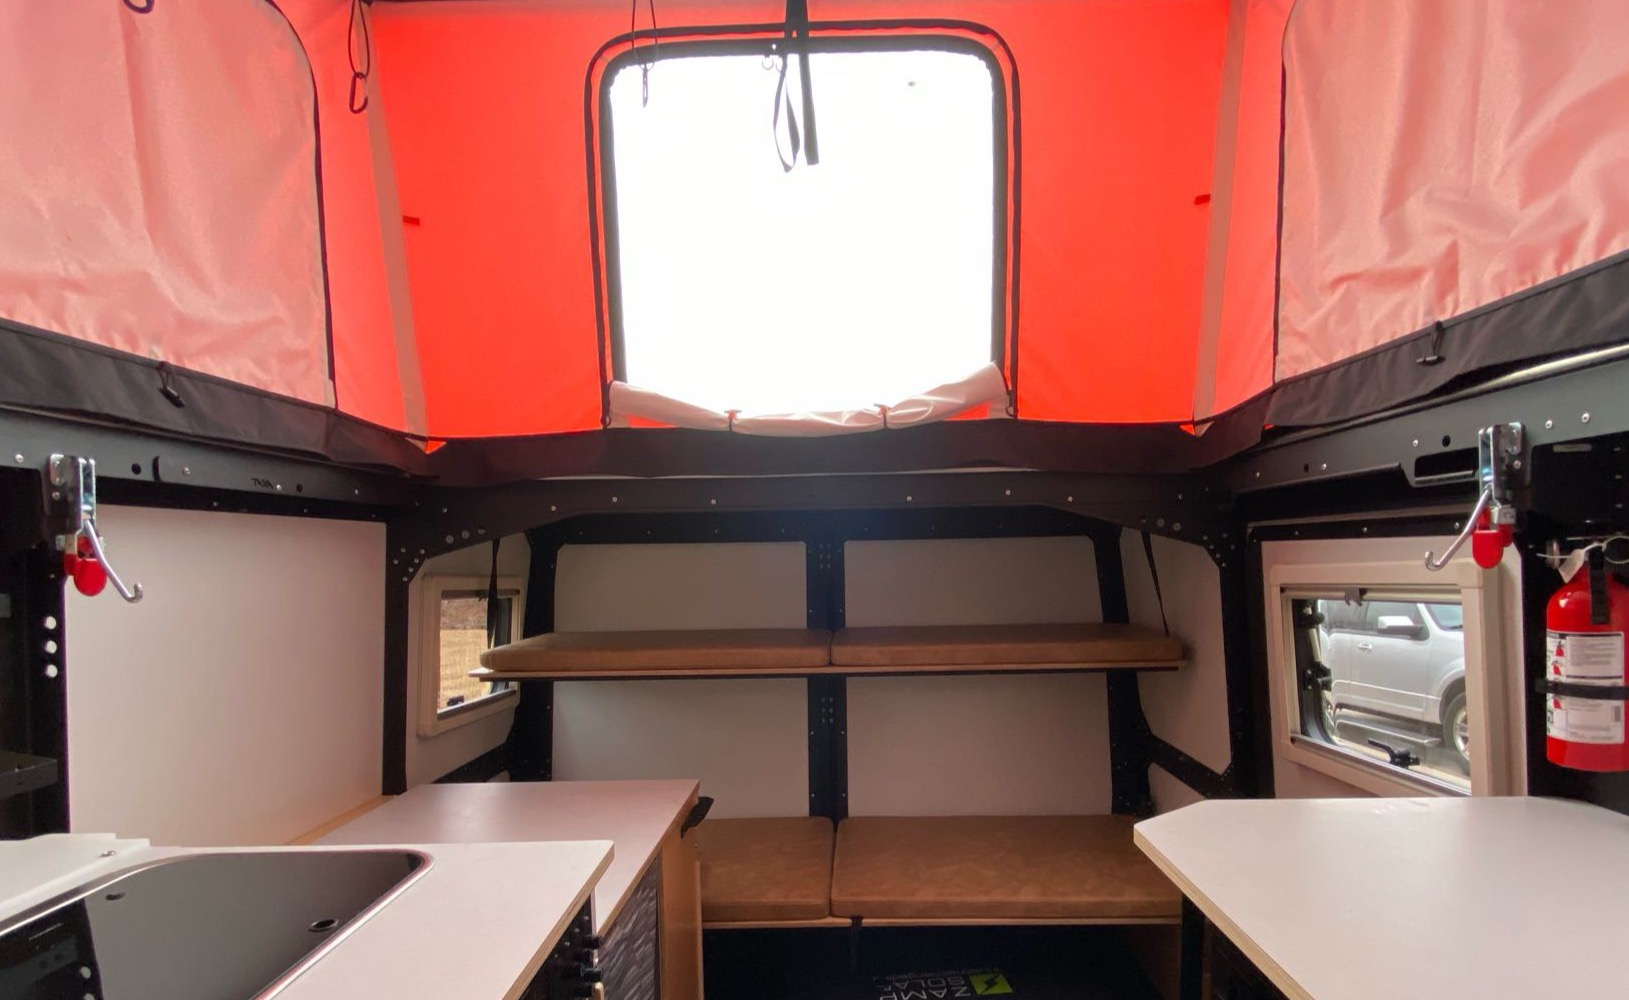 The bunk beds can be lifted secure against the wall for extra space or storage. The top bunk also has a safety net.. TAXA Outdoors Mantis Camper 2021